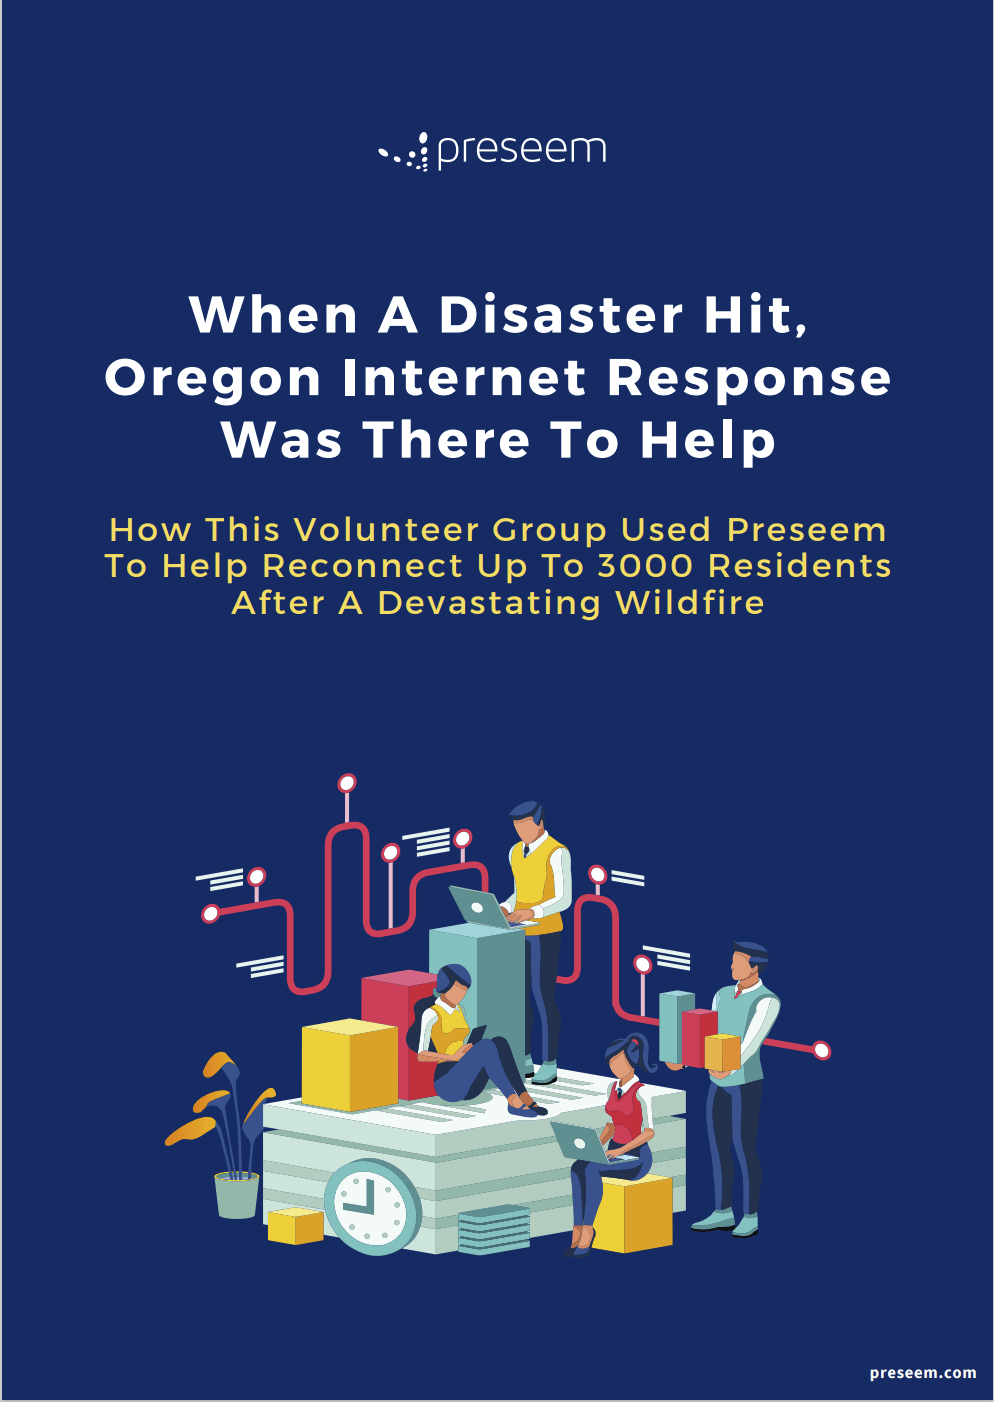 Preseem Success Story: When A Disaster Hit, Oregon Internet Response Was There To Help